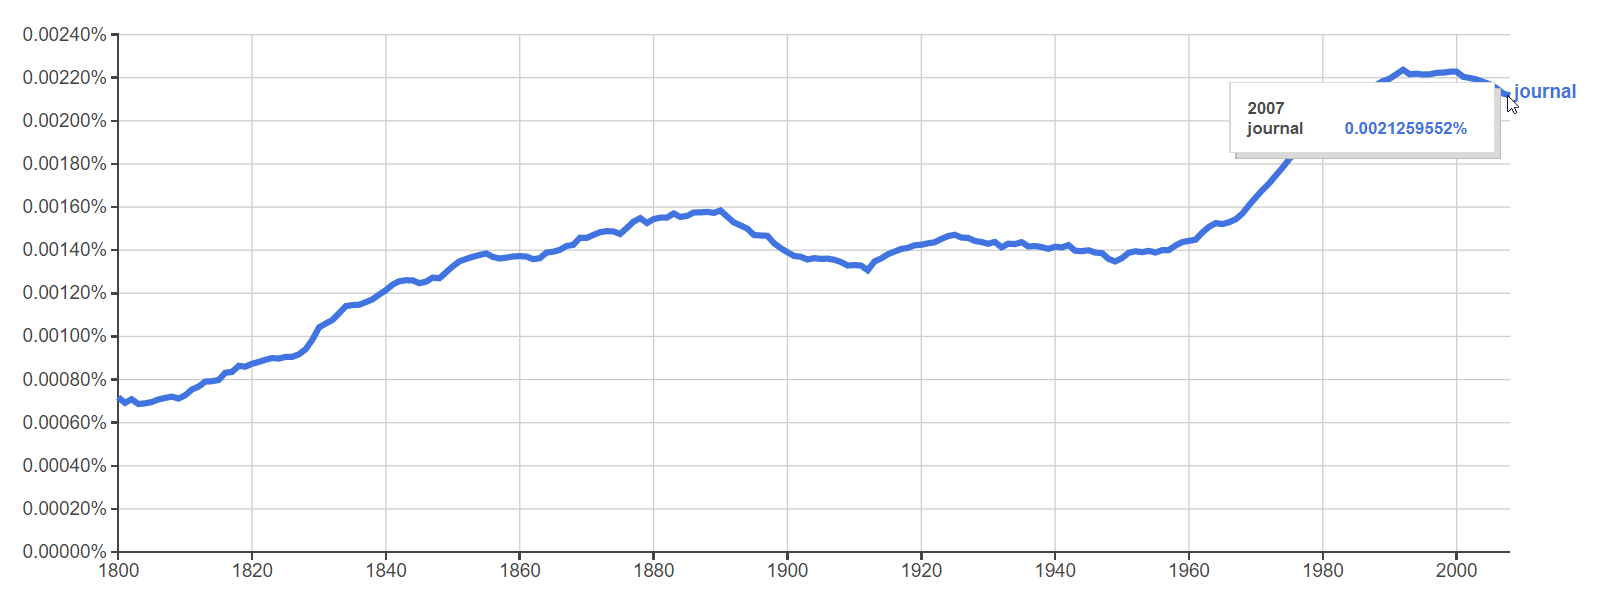 Google ngrams for the word journal